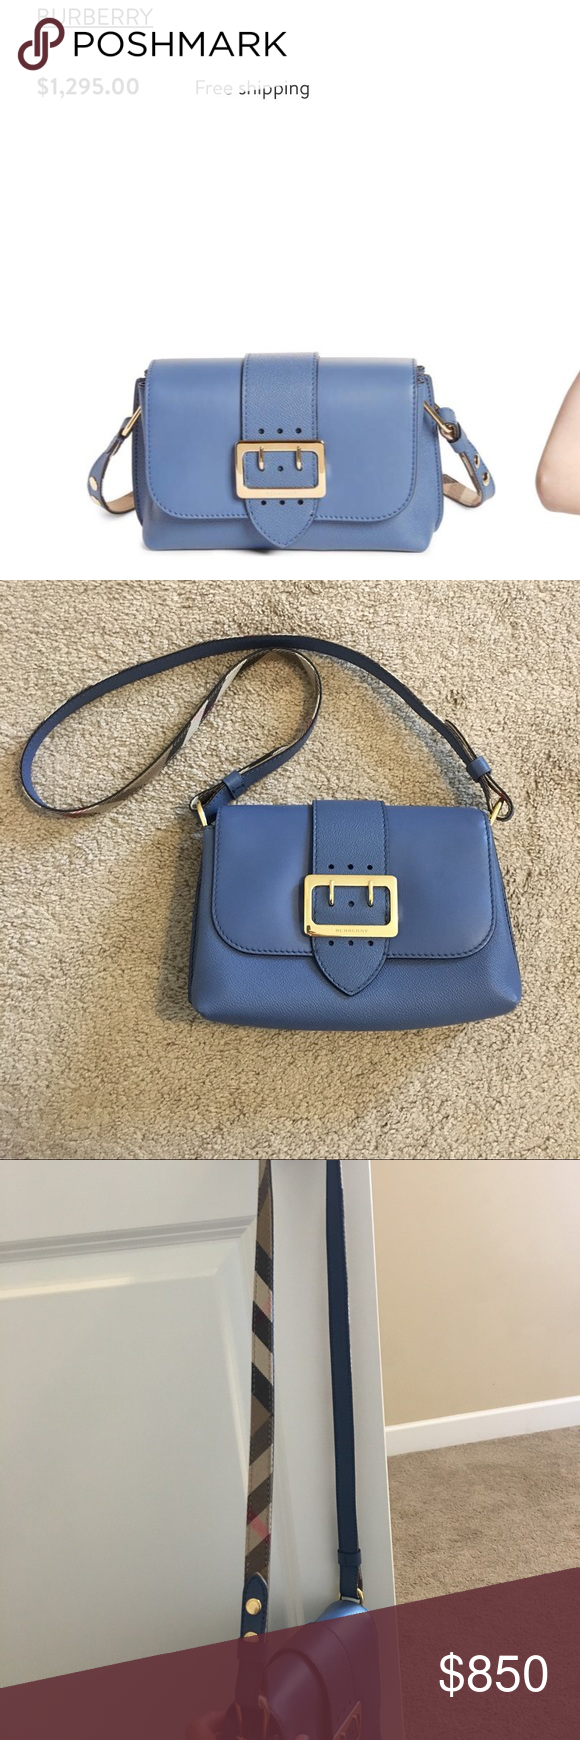 03f9734e5330 New Burberry small buckle leather crossbody bag 100% authentic and brand new!  Color is